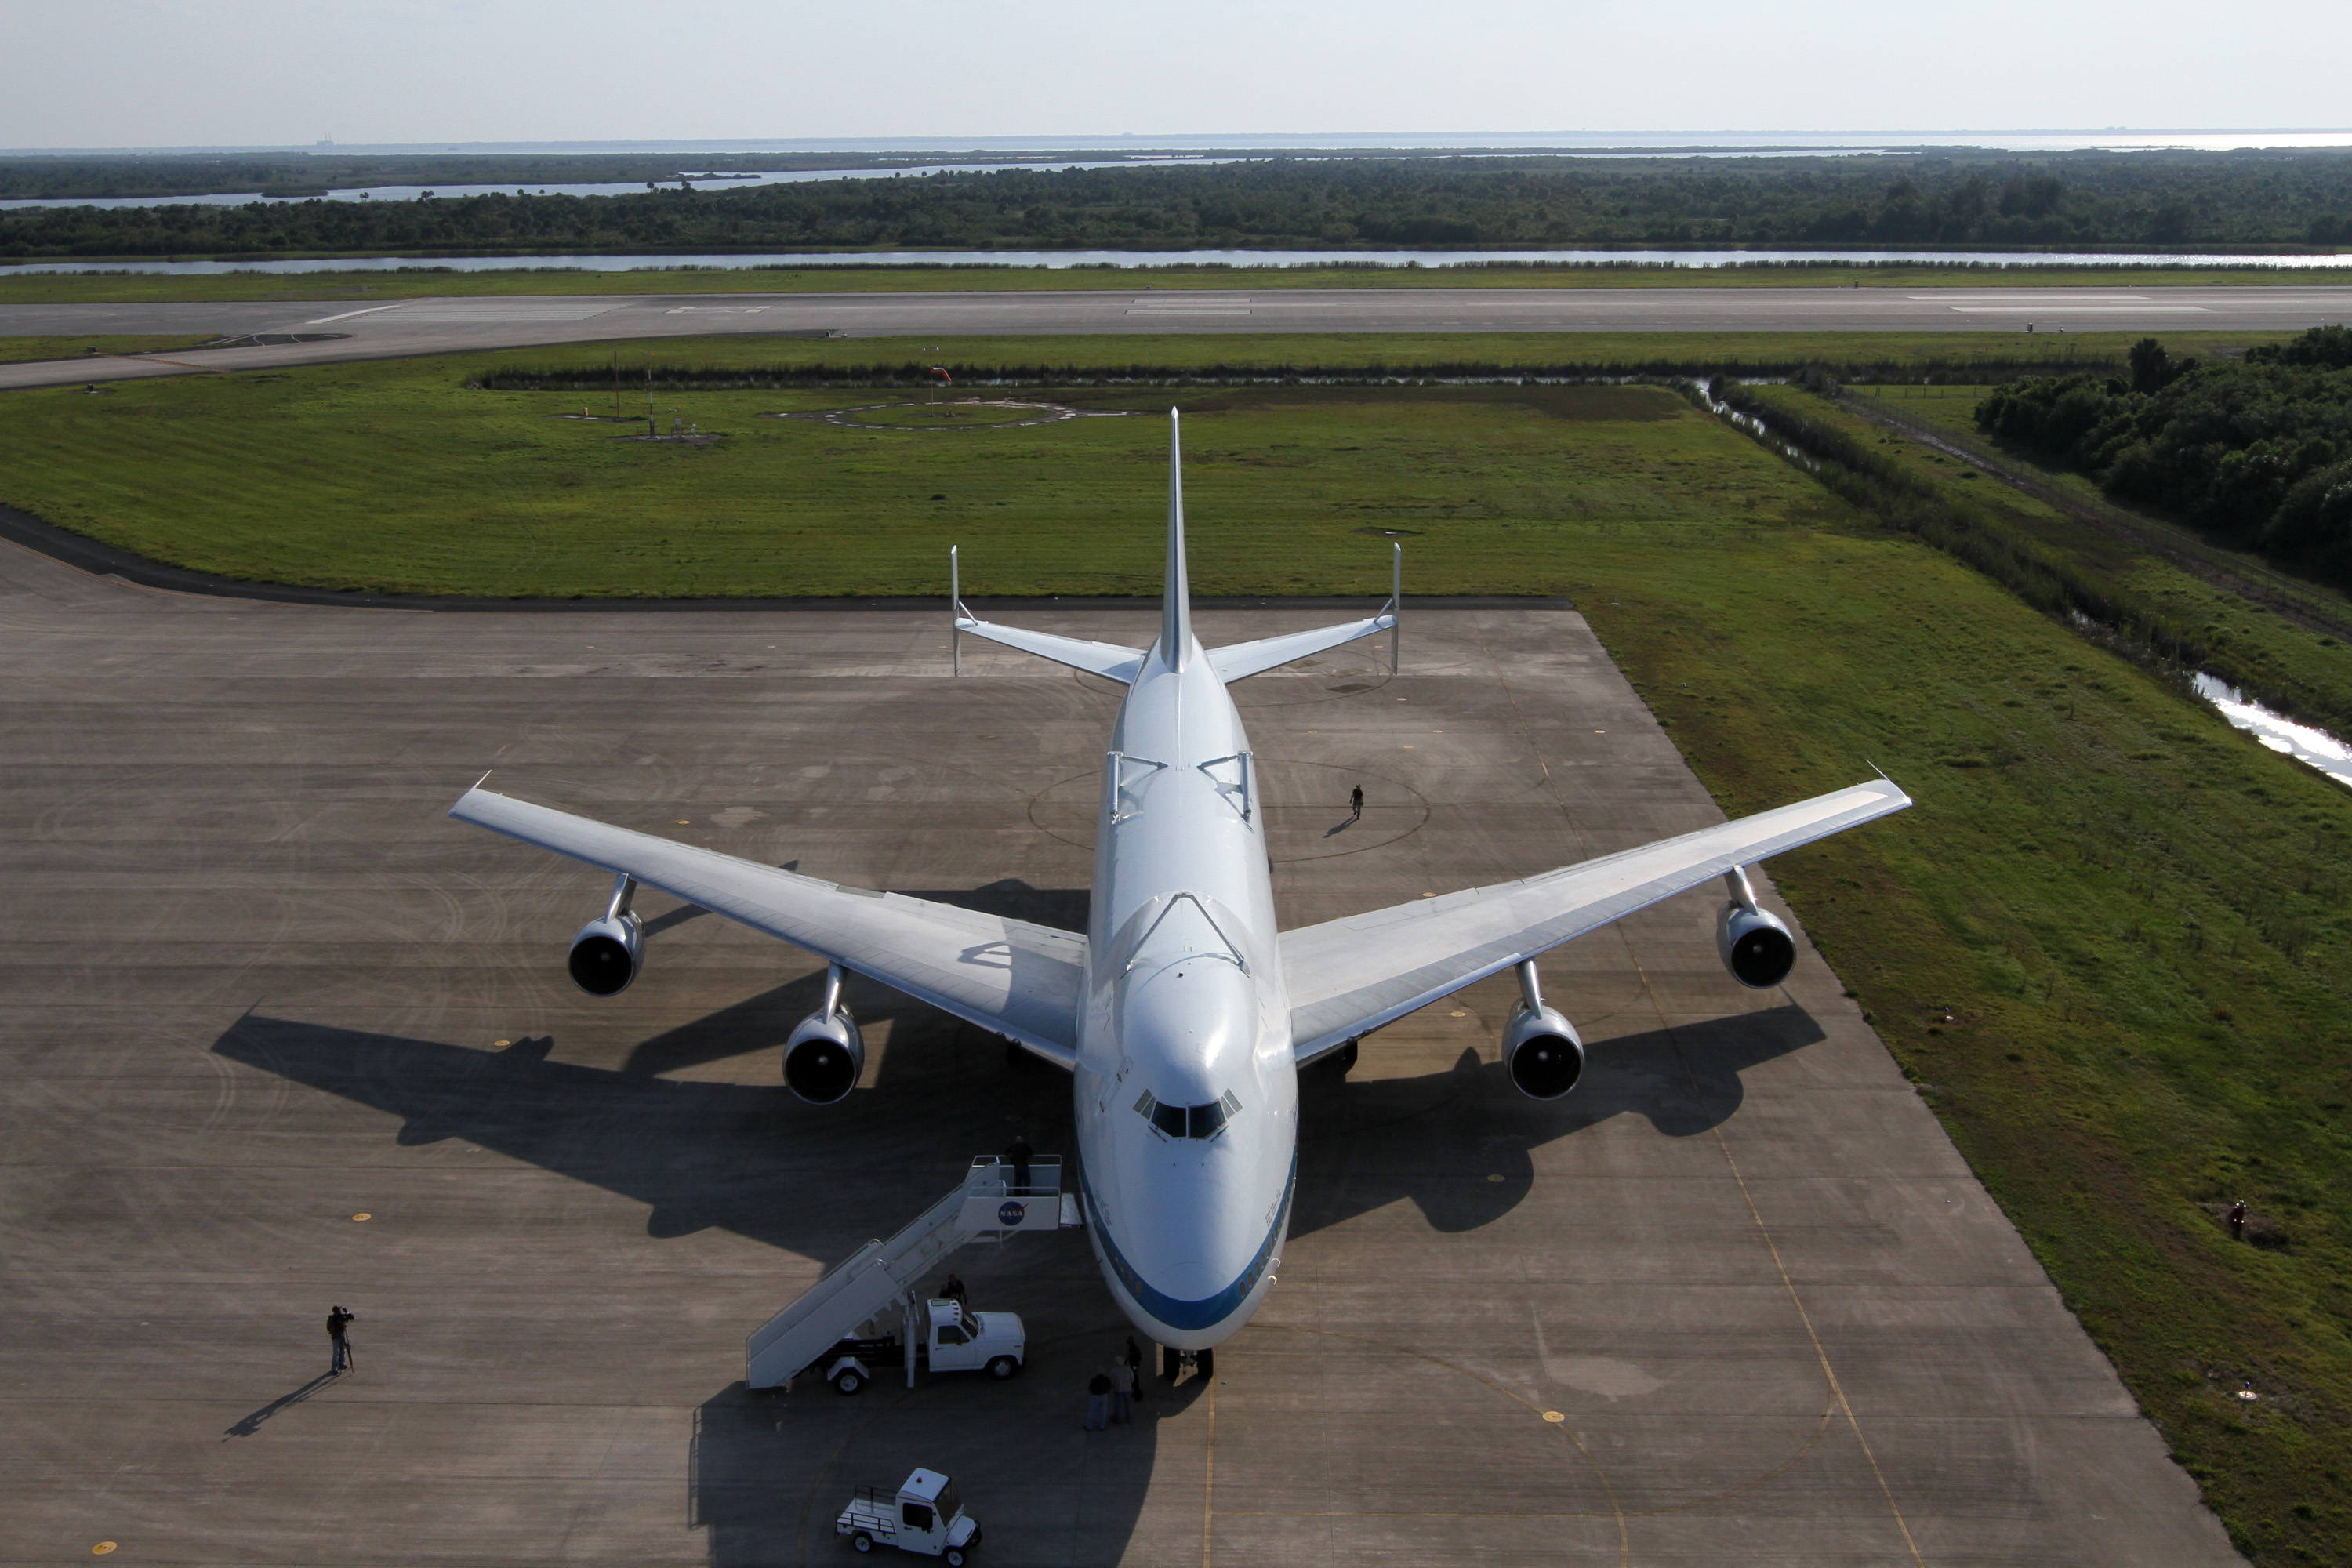 Shuttle Carrier Aircraft Arrives at Kennedy Space Center ...